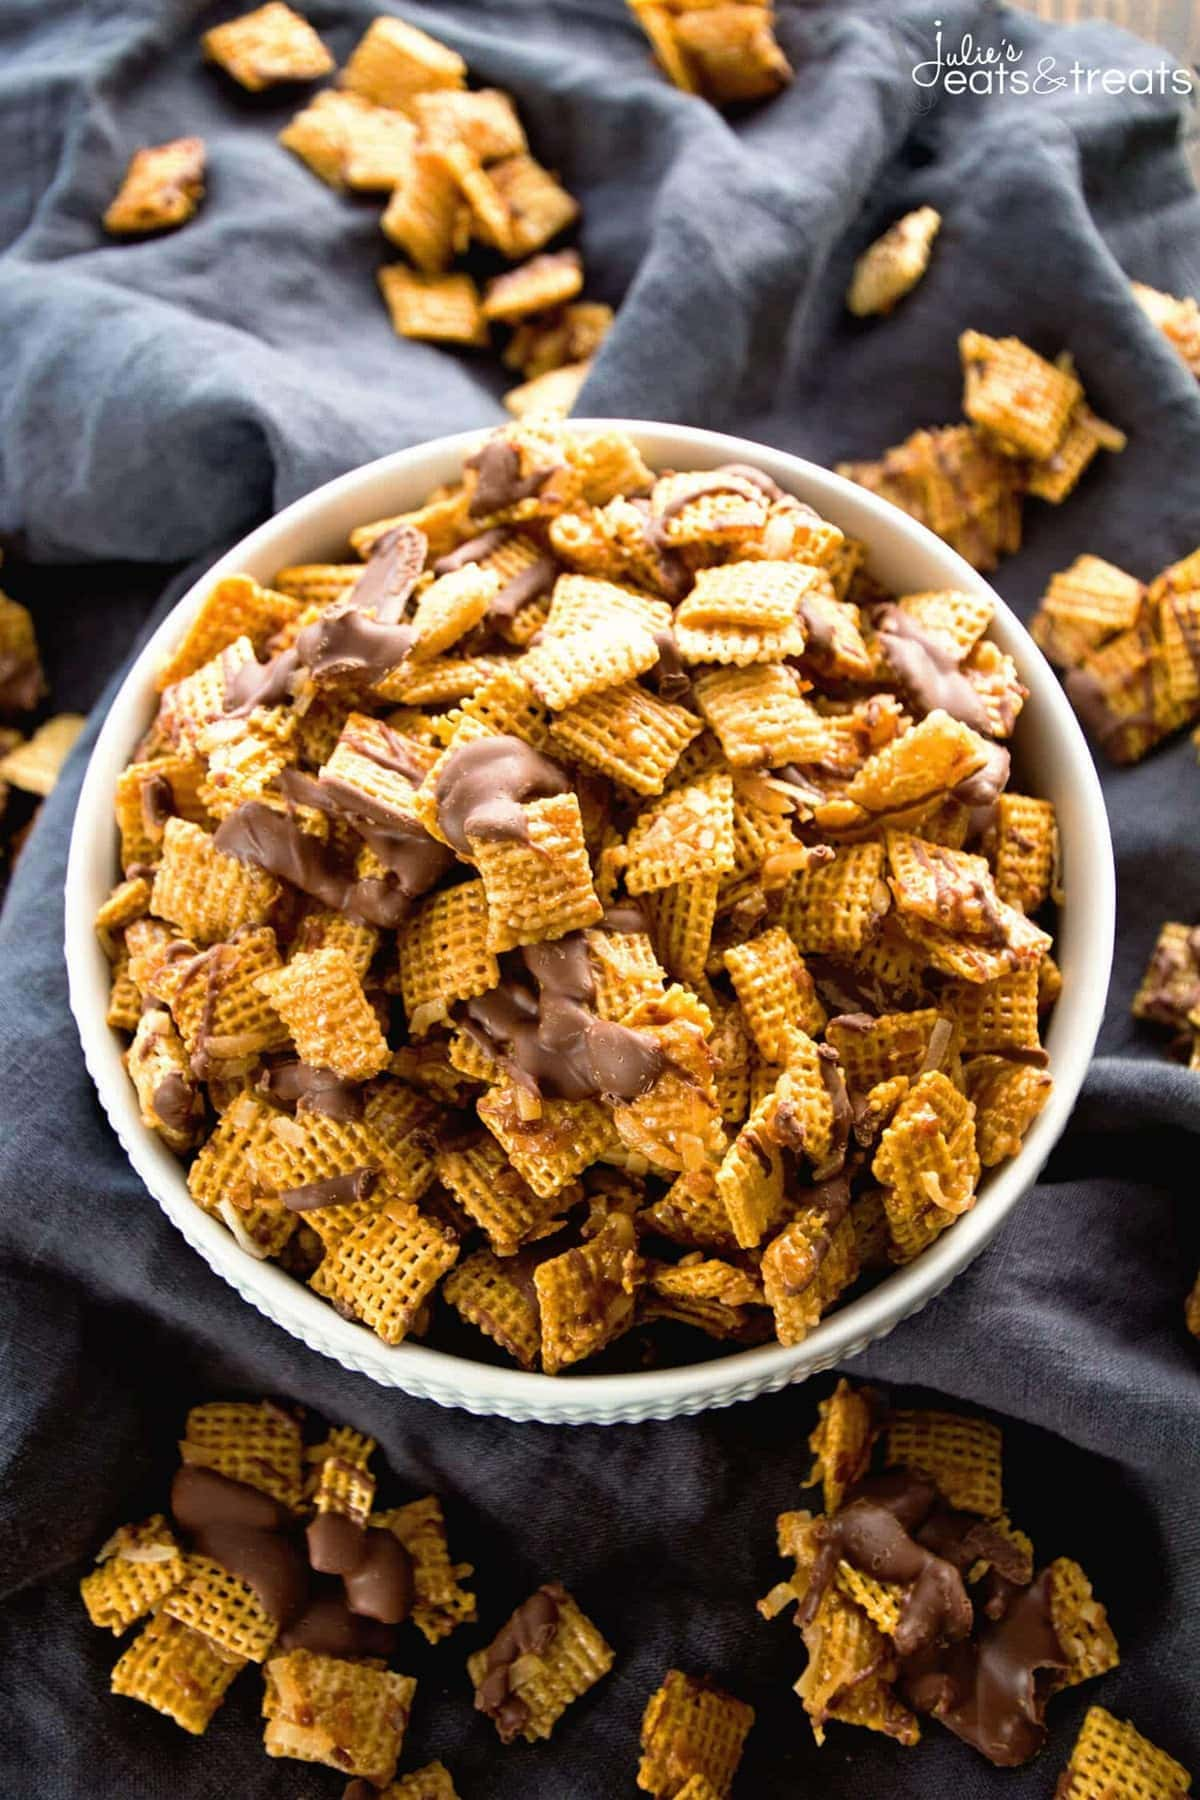 Samoa Chex Mix ~ Easy Snack Mix Loaded with Toasted Coconut, Chocolate and Smothered in Caramel!